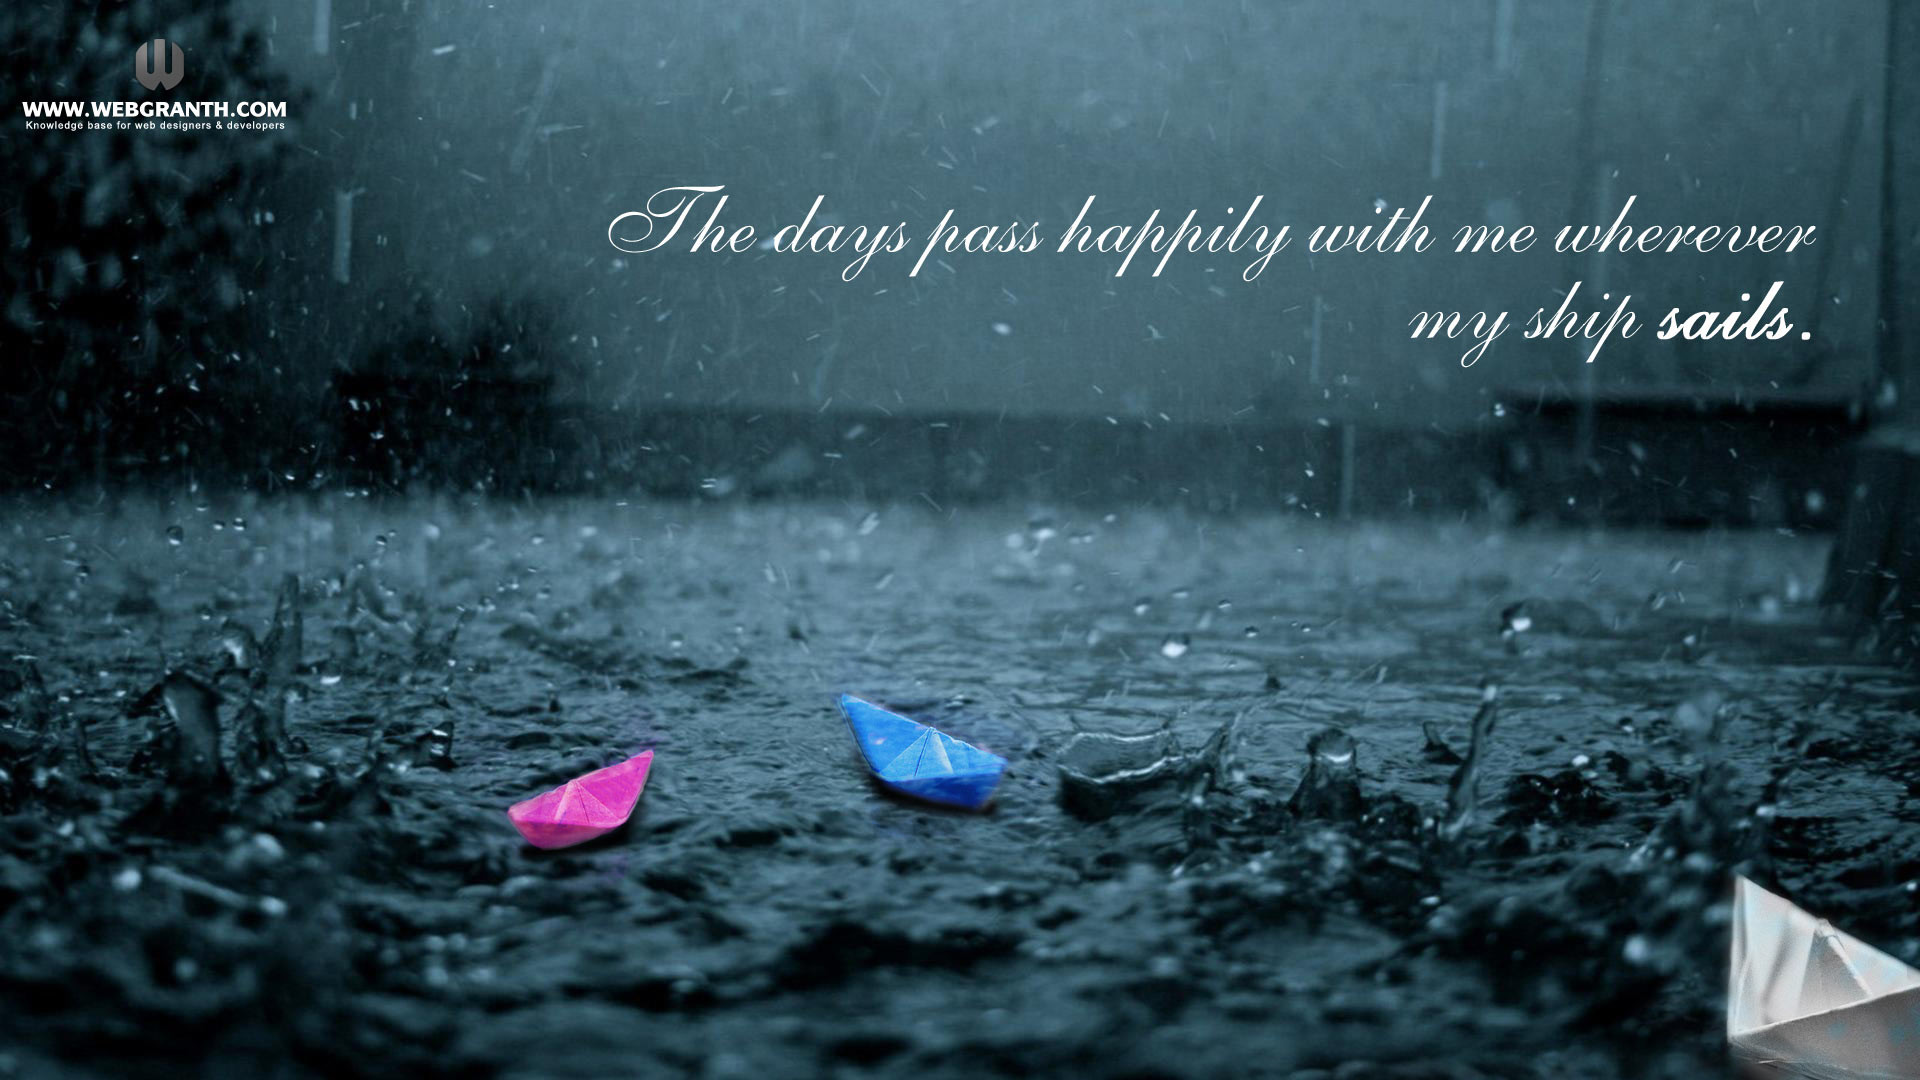 Beautiful Rain Drops Wallpapers with Quotes (52+ images)